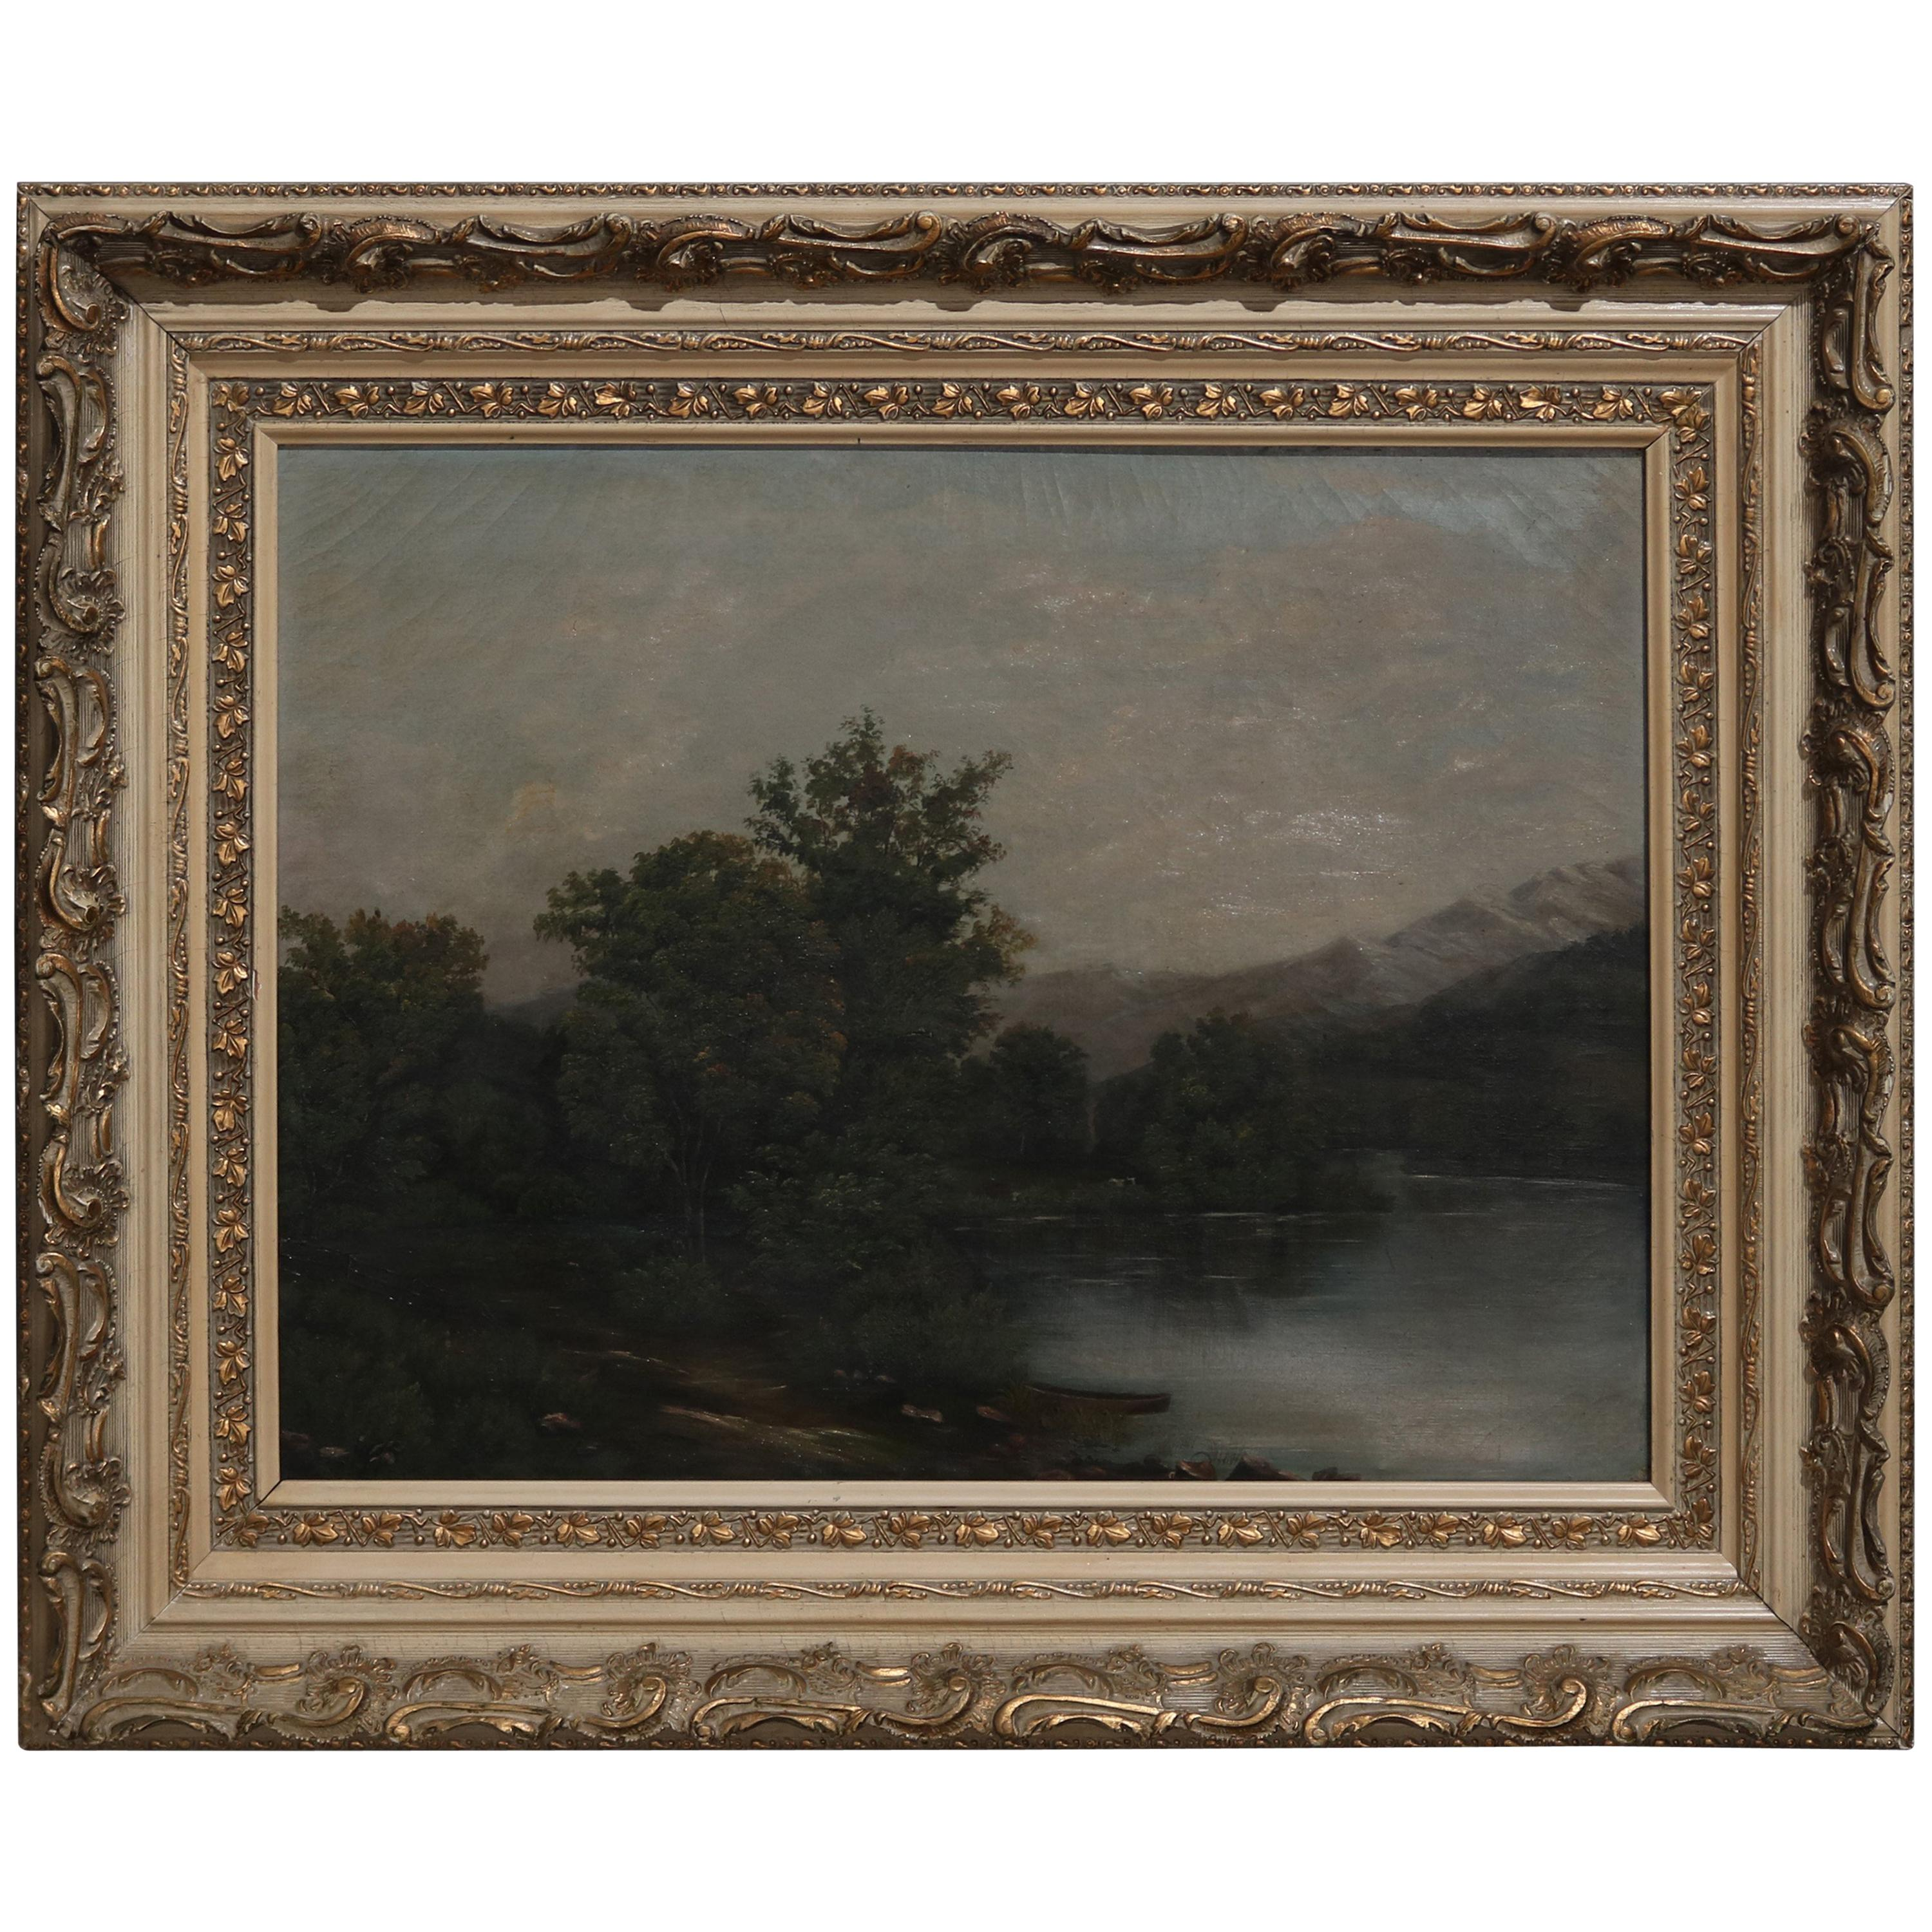 7d89aeaf1c23 19th Century Picture Frames - 259 For Sale at 1stdibs